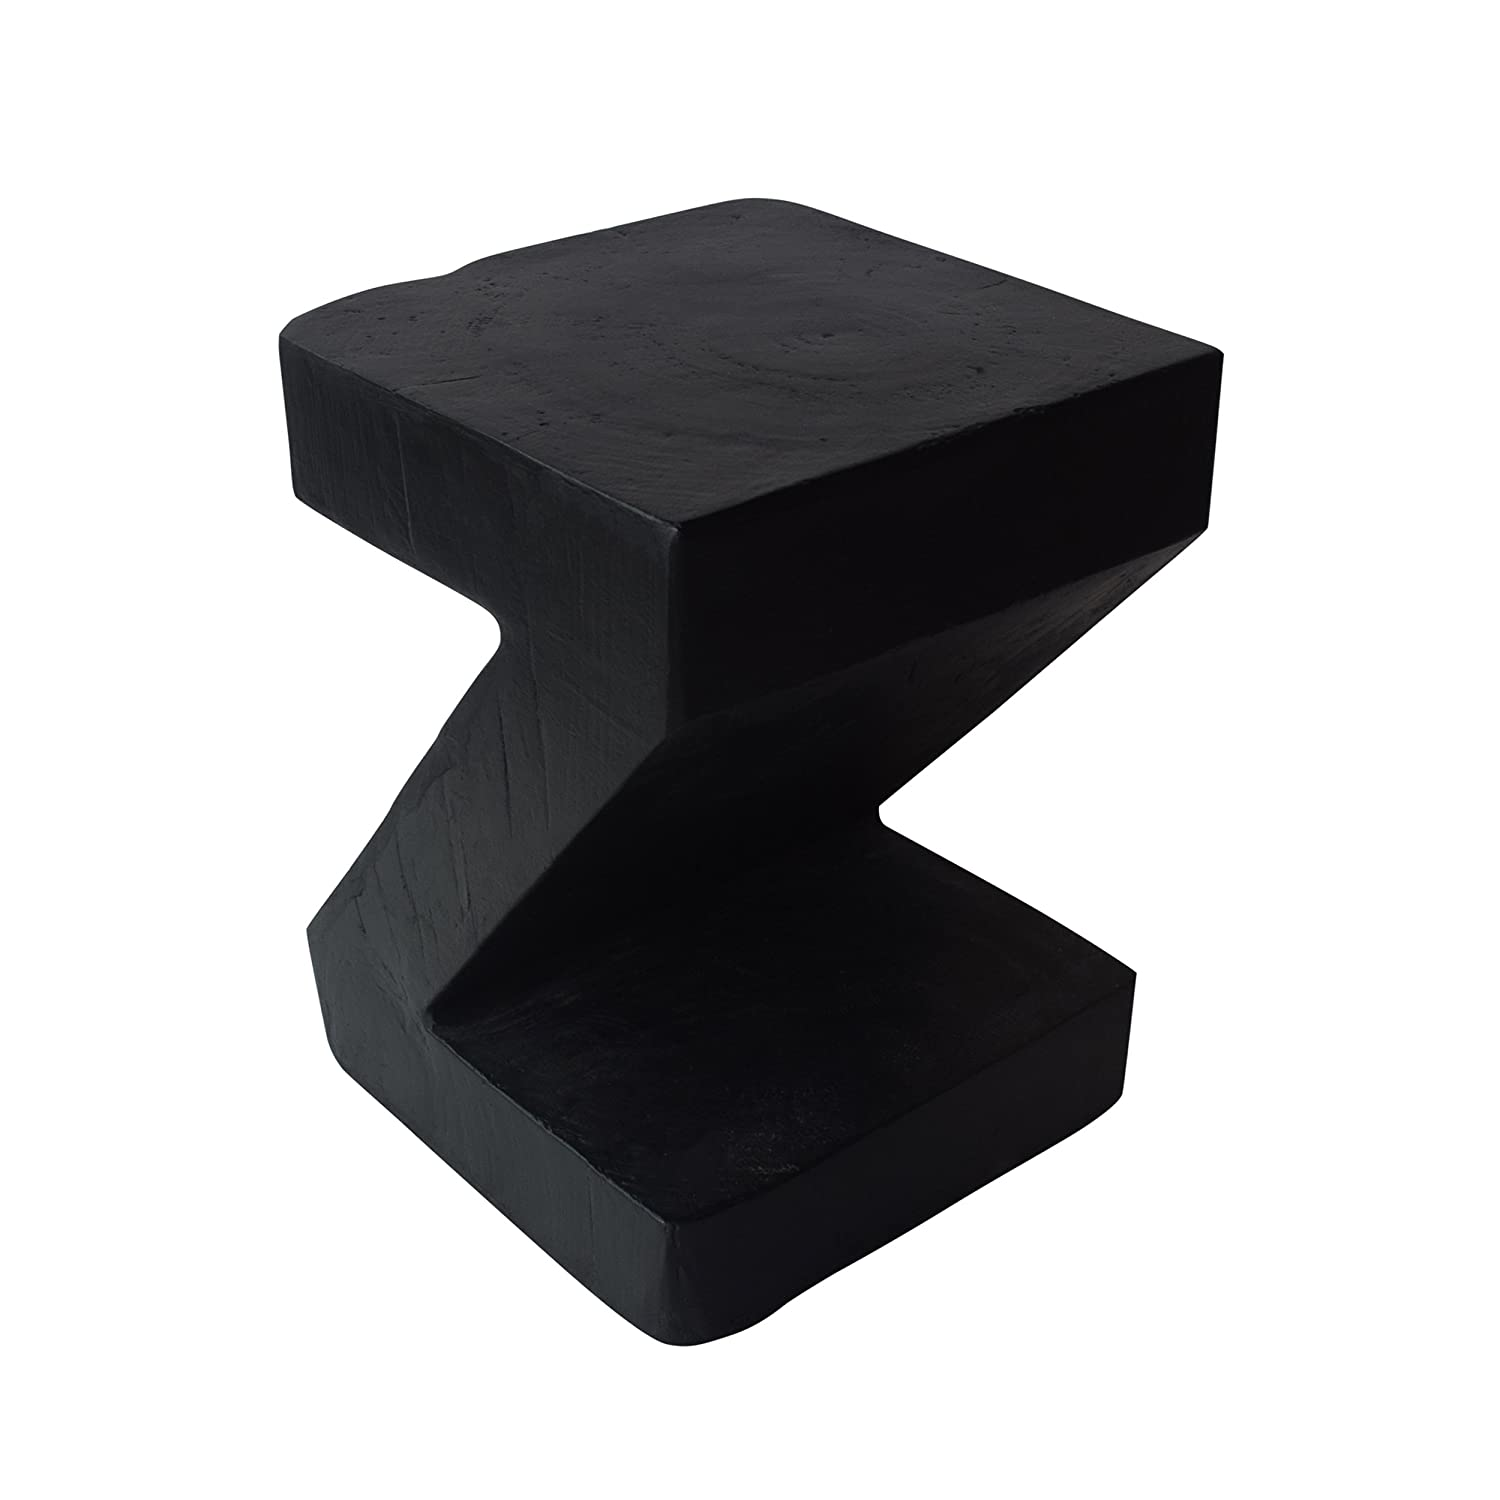 Christopher Knight Home 305833 Jingle Outdoor Light-Weight Concrete Side Table, Black